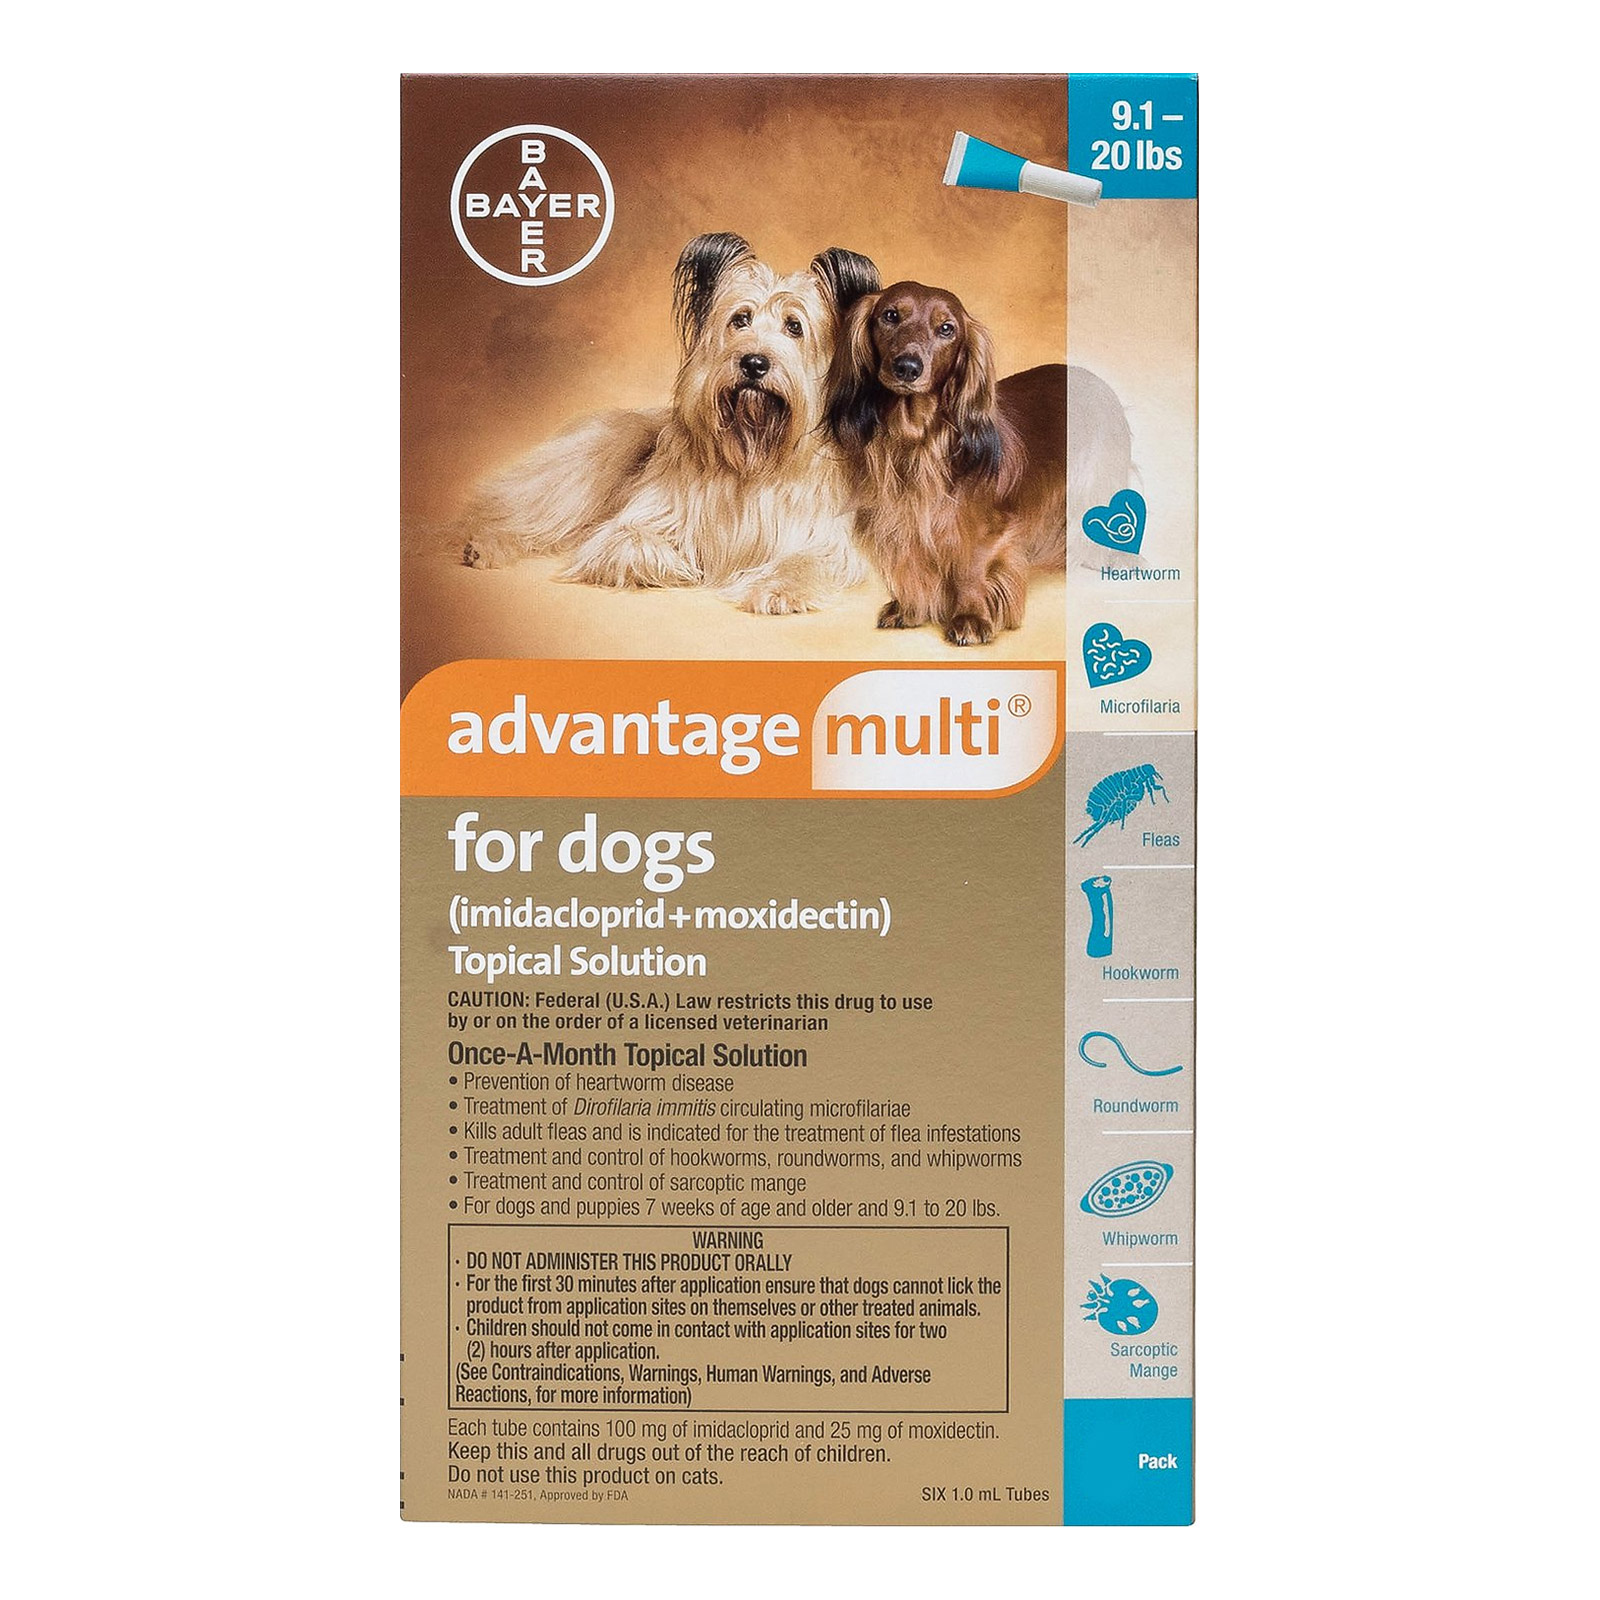 Advantage_Multi_Advocate_Medium_Dogs_9120_Lbs_Aqua_3_Doses